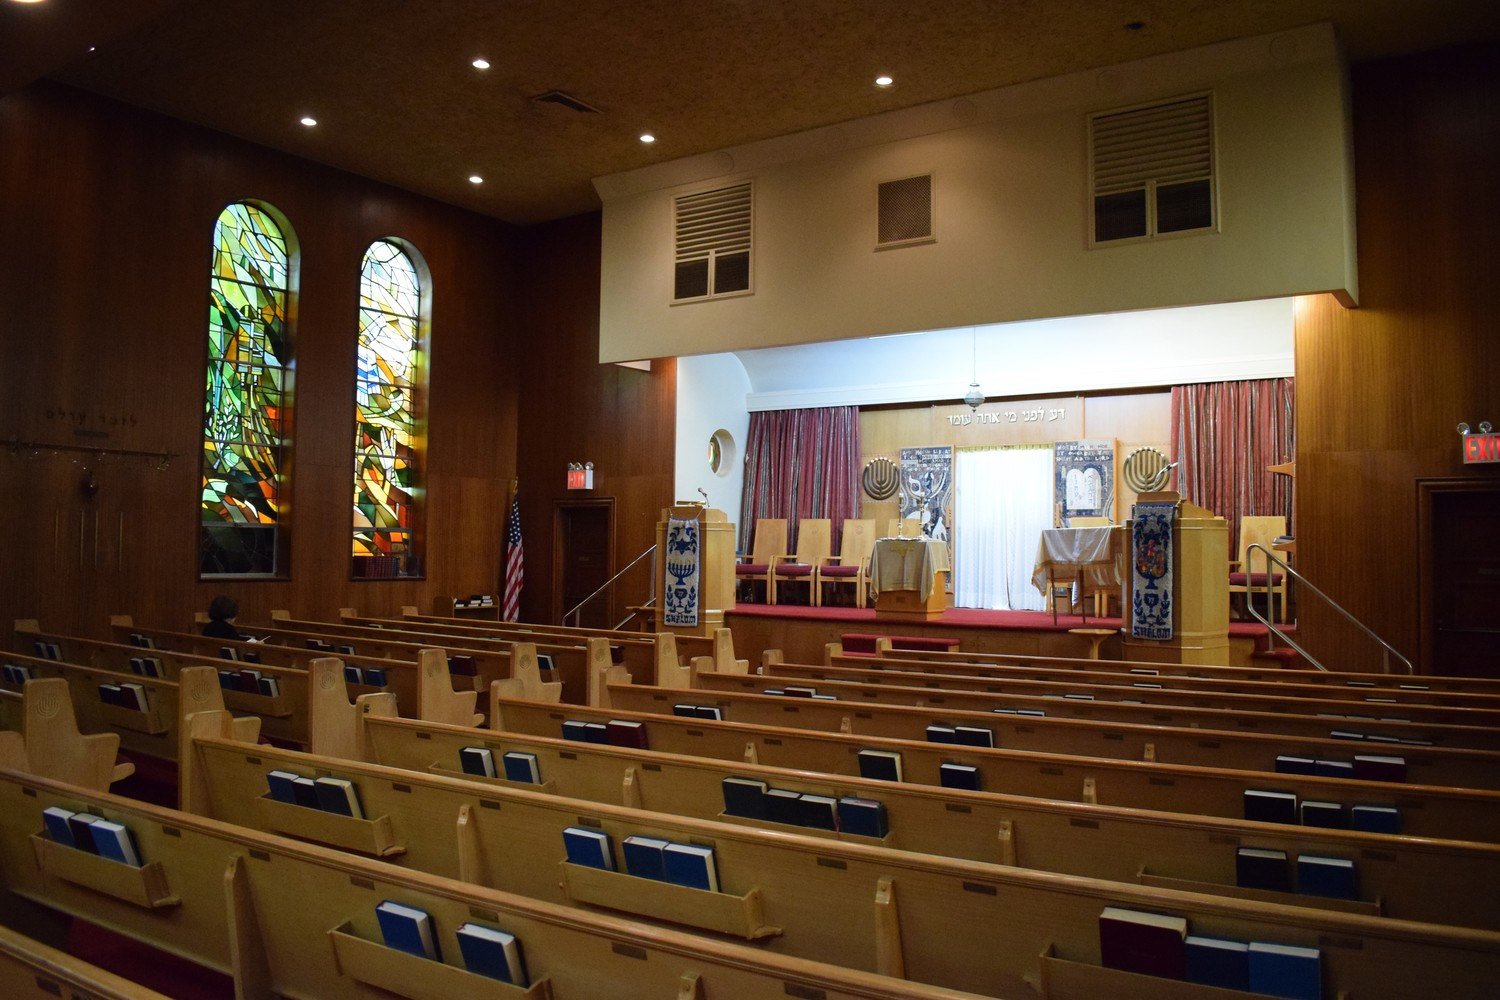 Temple B'Nai Israel used to serve more than 600 families in Elmont. Now it only sees about 70 members.